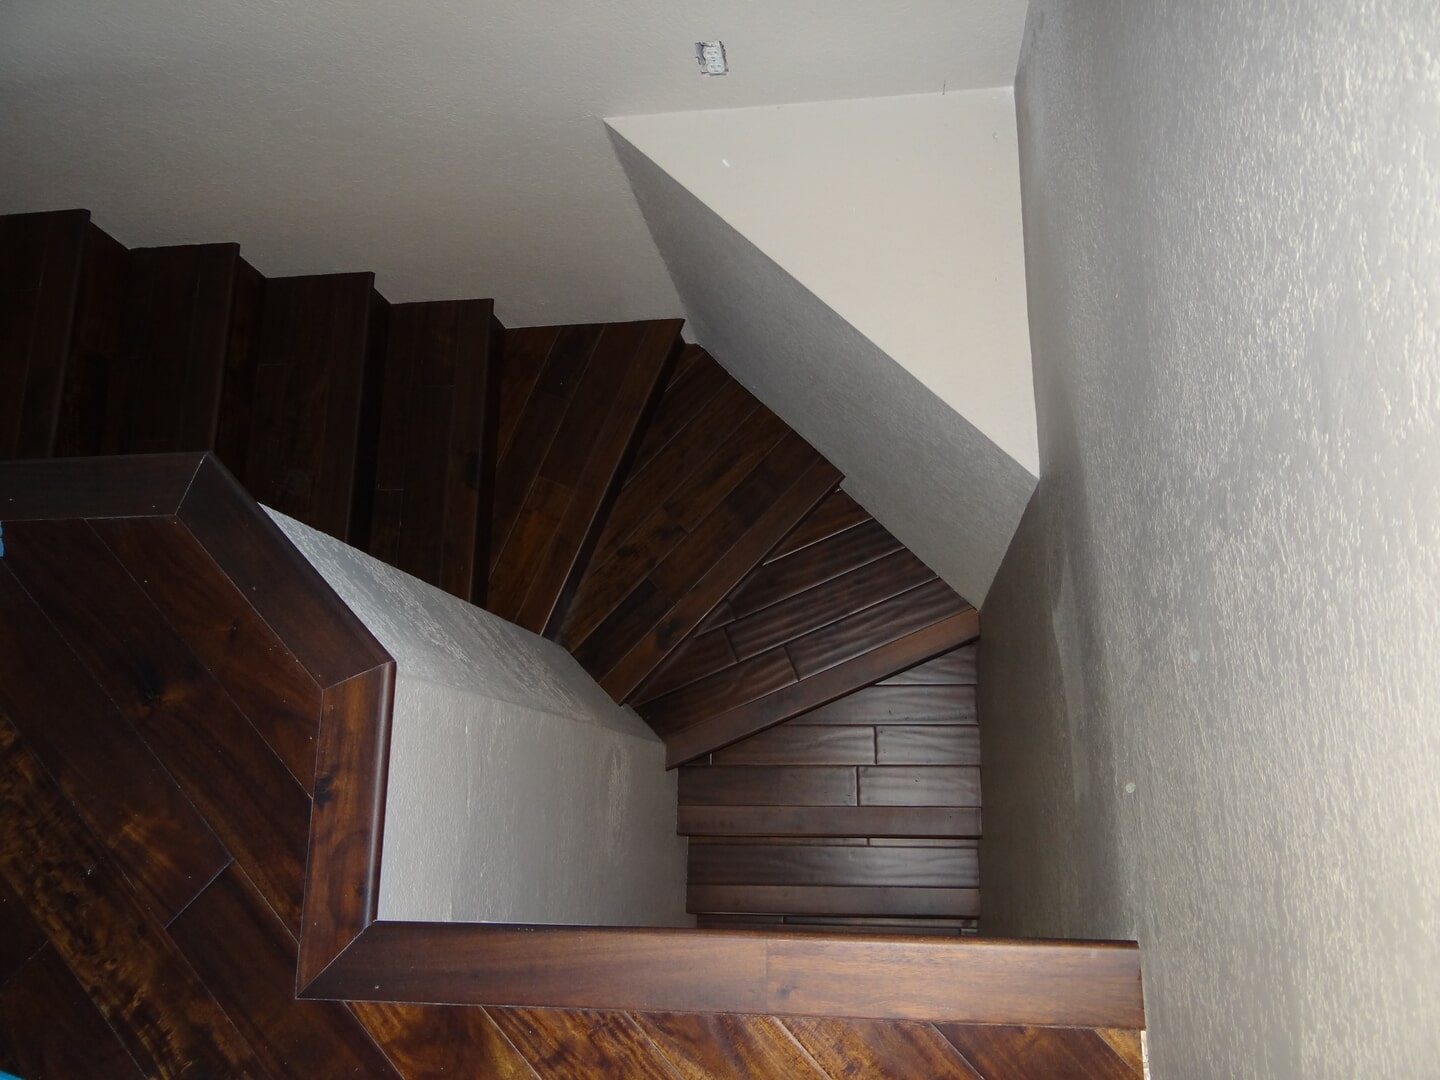 Bergen Hardwood Flooring Our Work - Stairs8